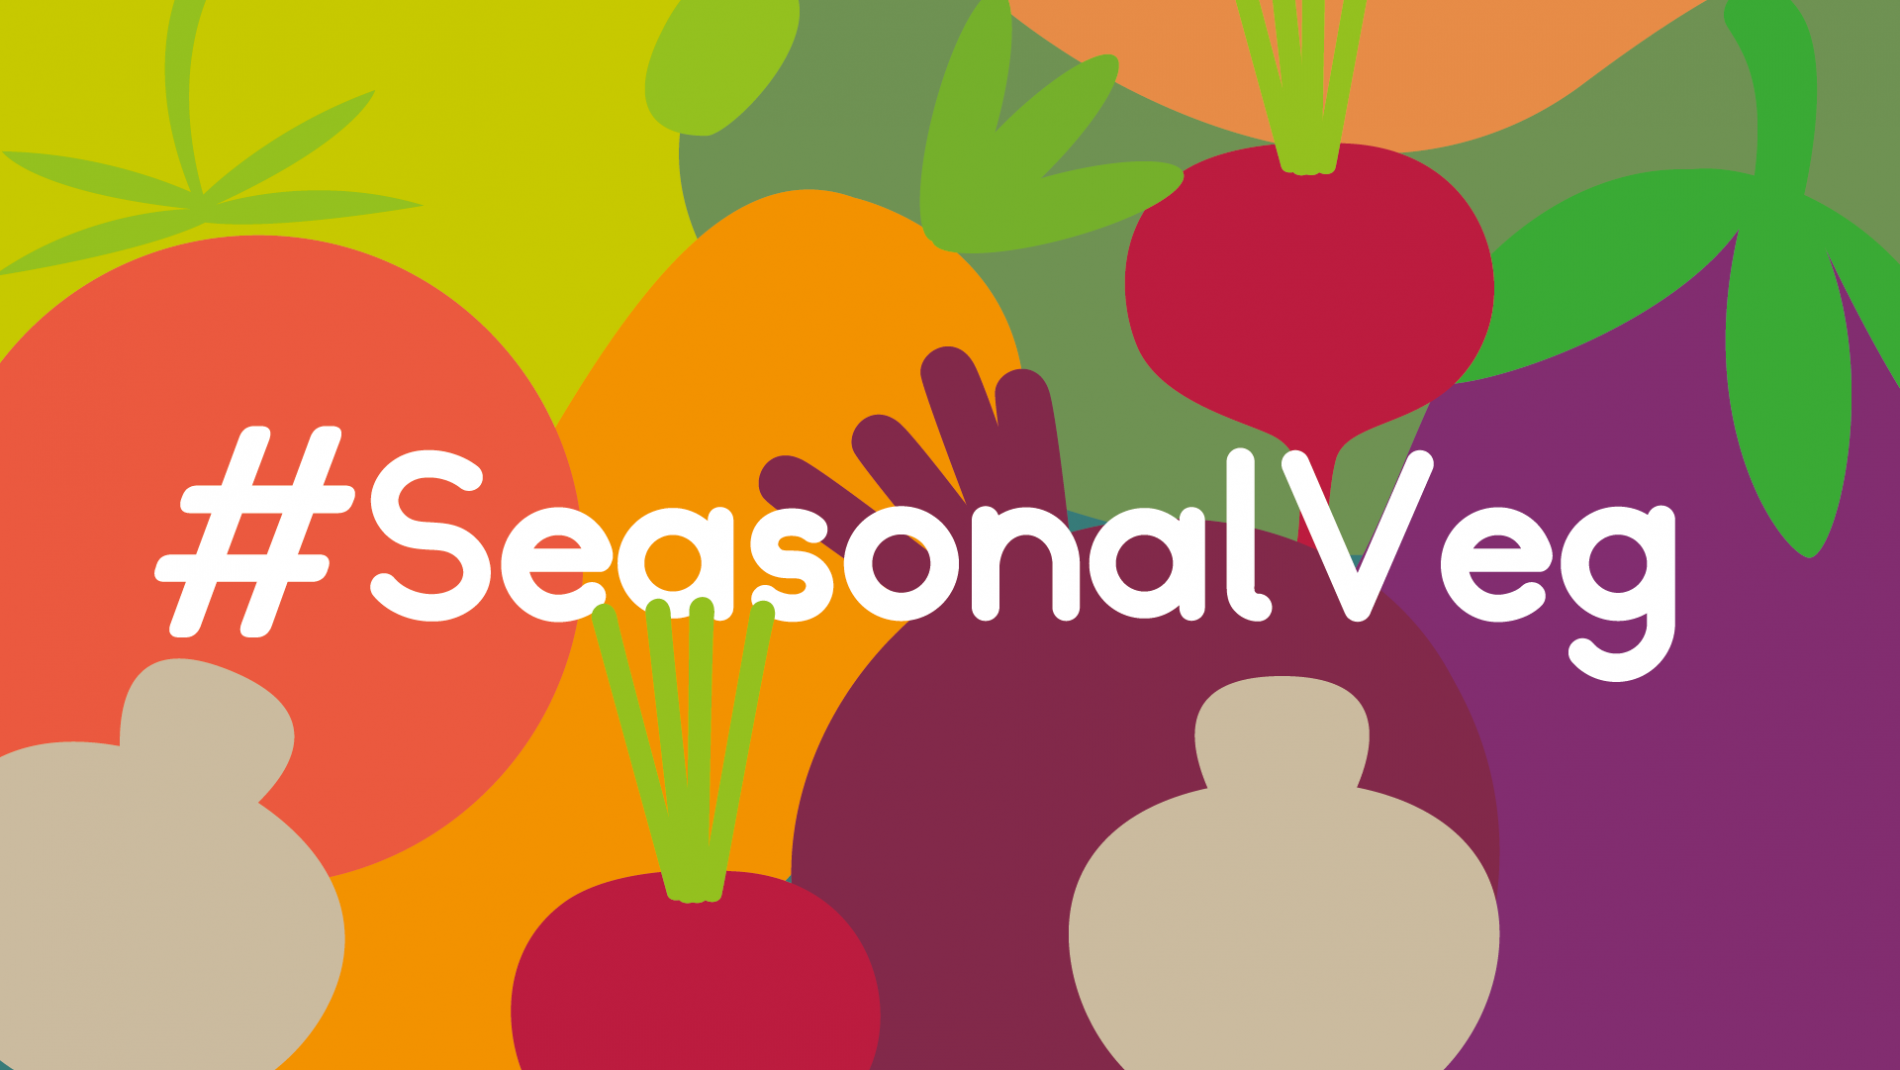 Chefs and Nutritionists Support Campaign to Eat More Seasonal Veg